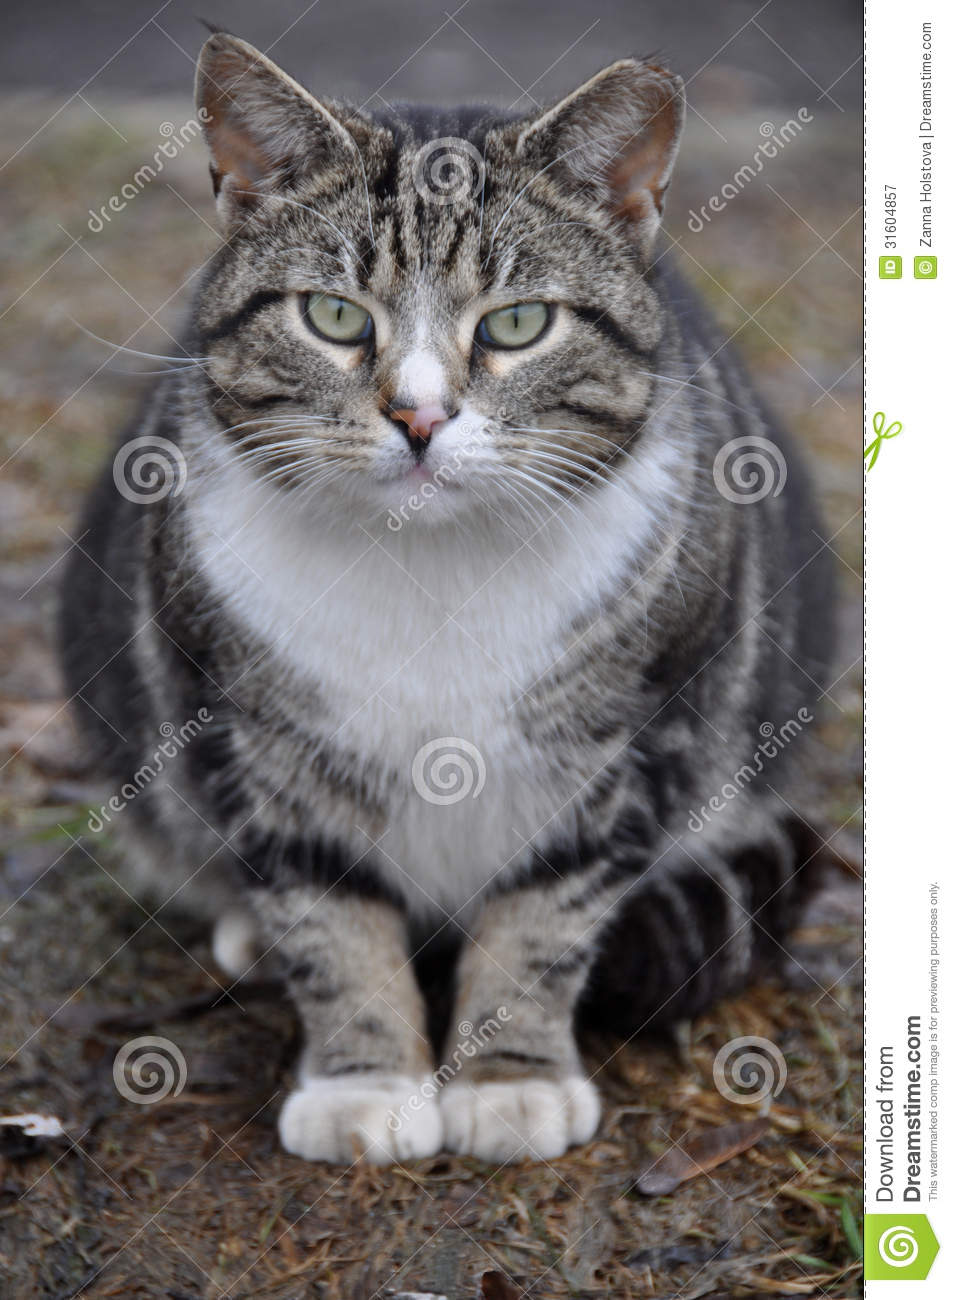 Big Fat Cat Royalty Free Stock Photography Image 31604857